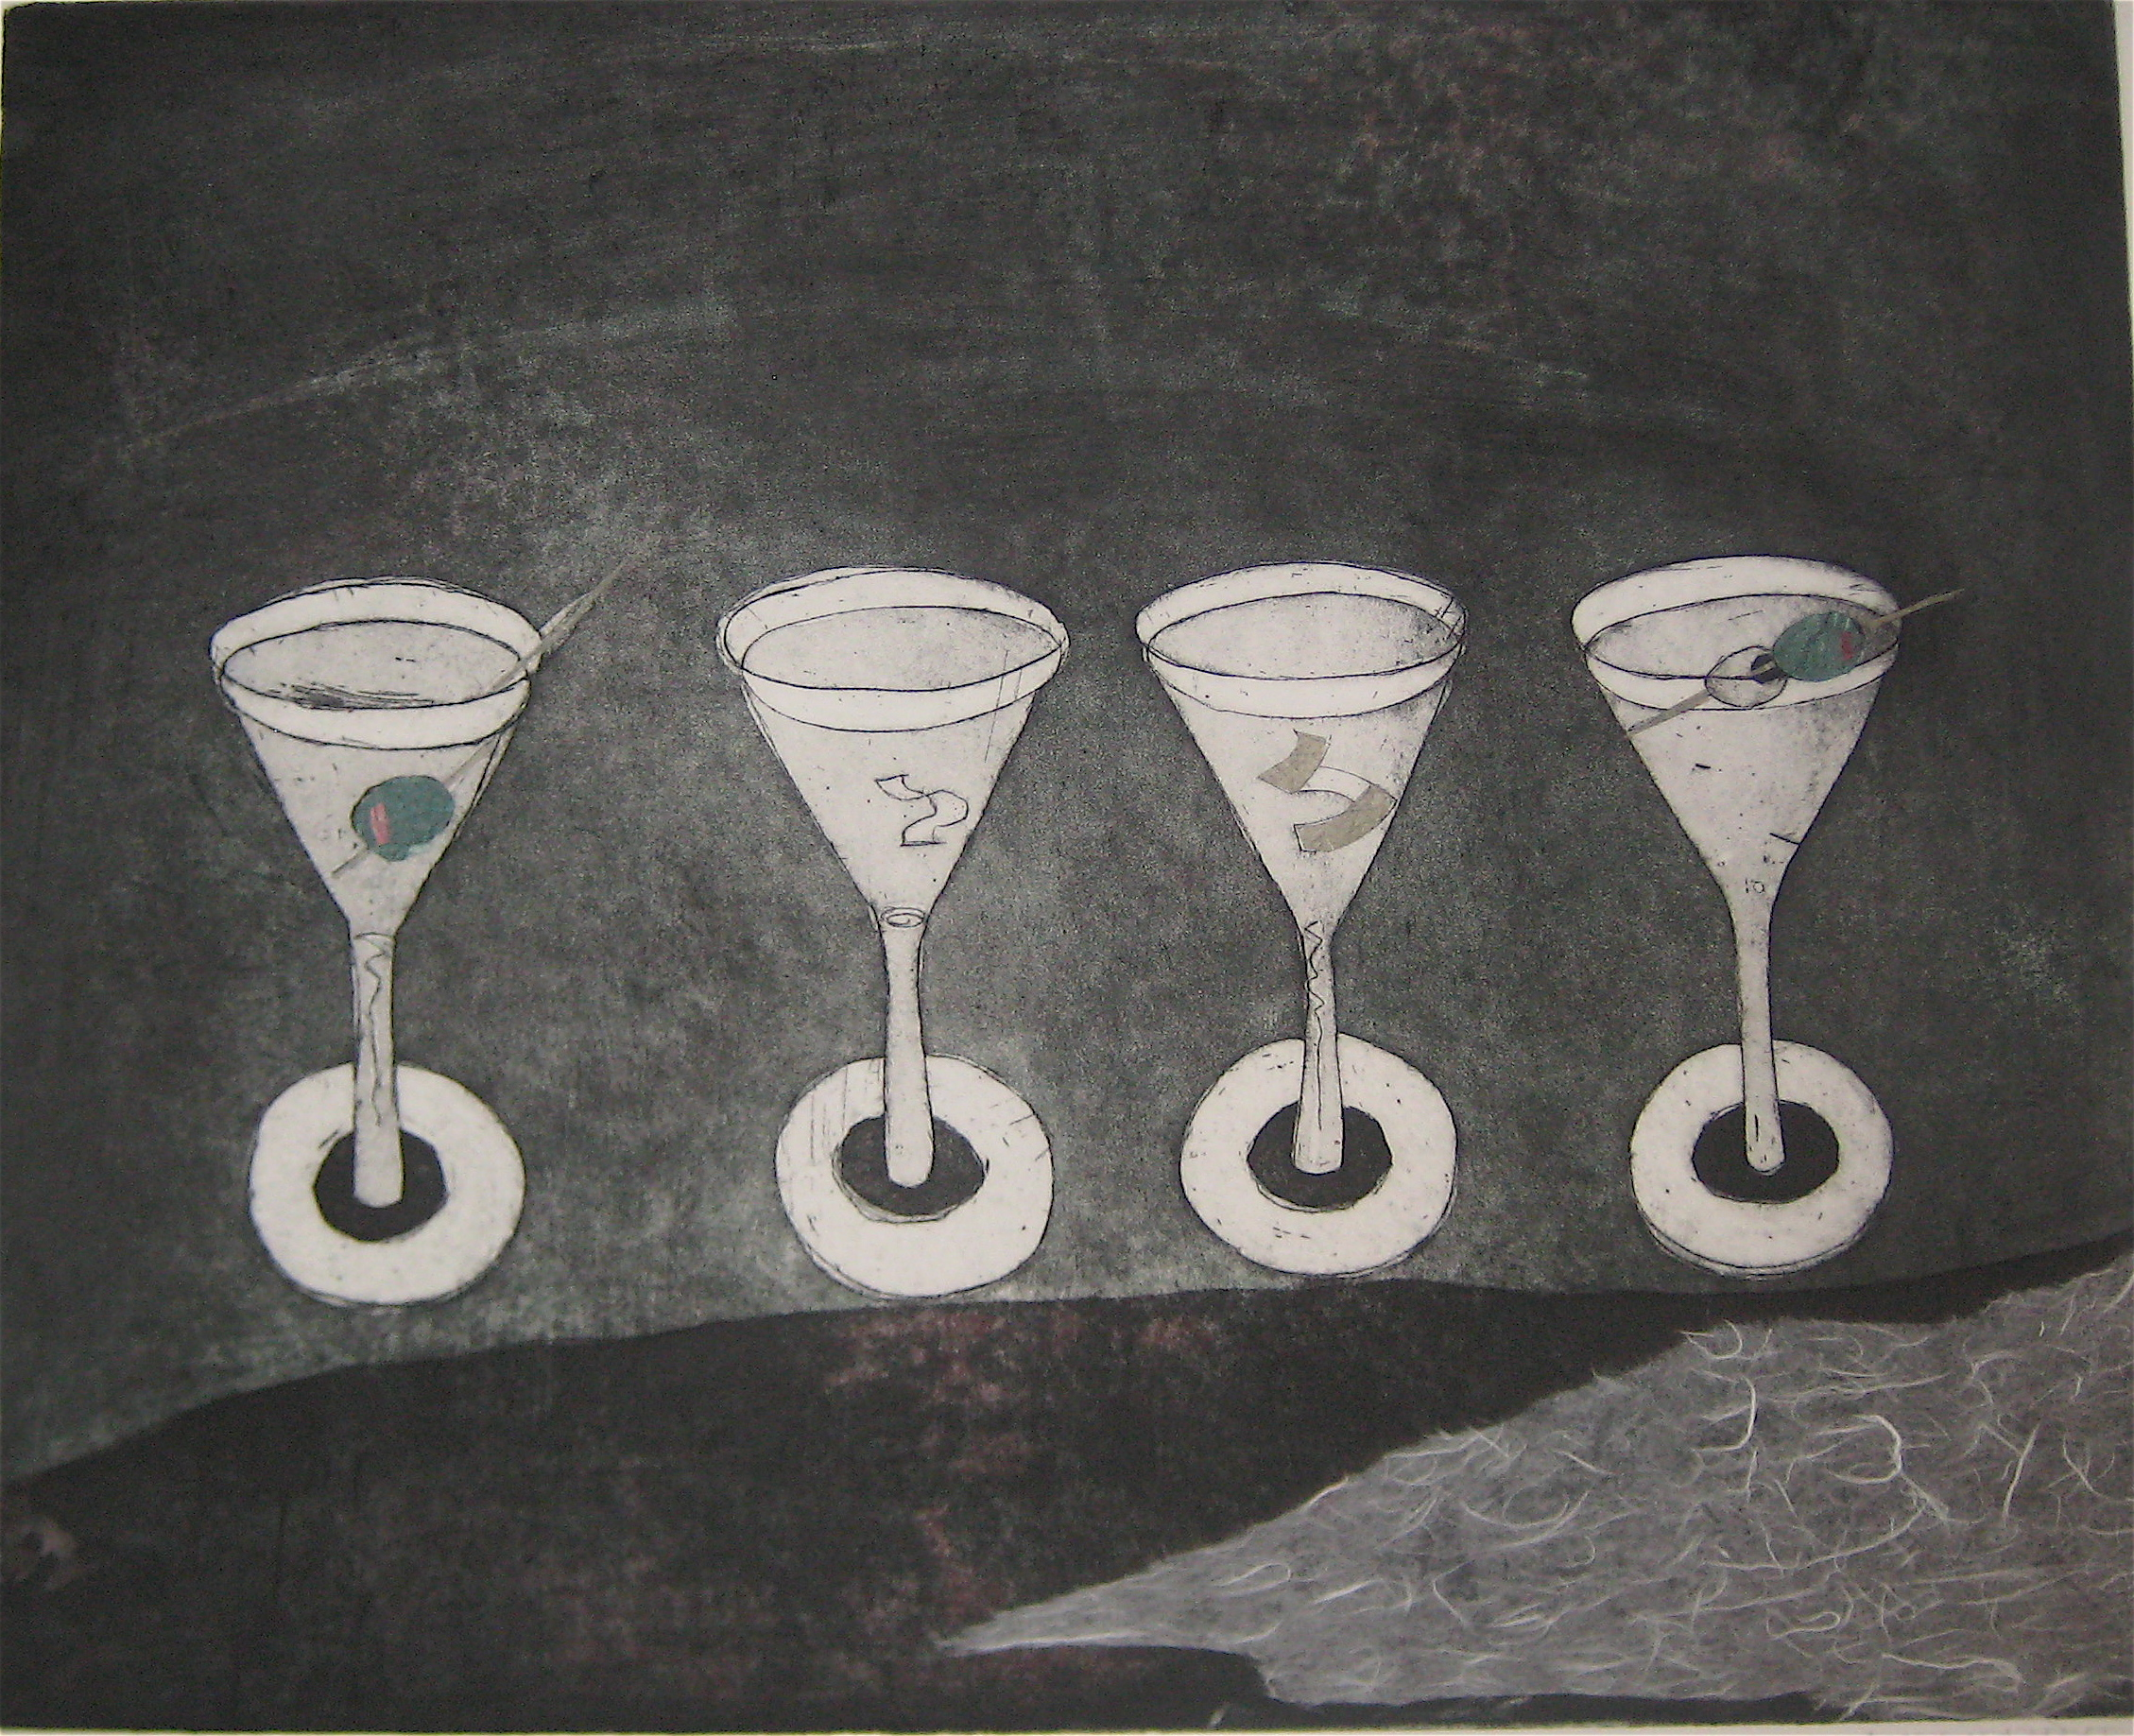 Martinis 1, Etching, Collage, 16 x 19.5